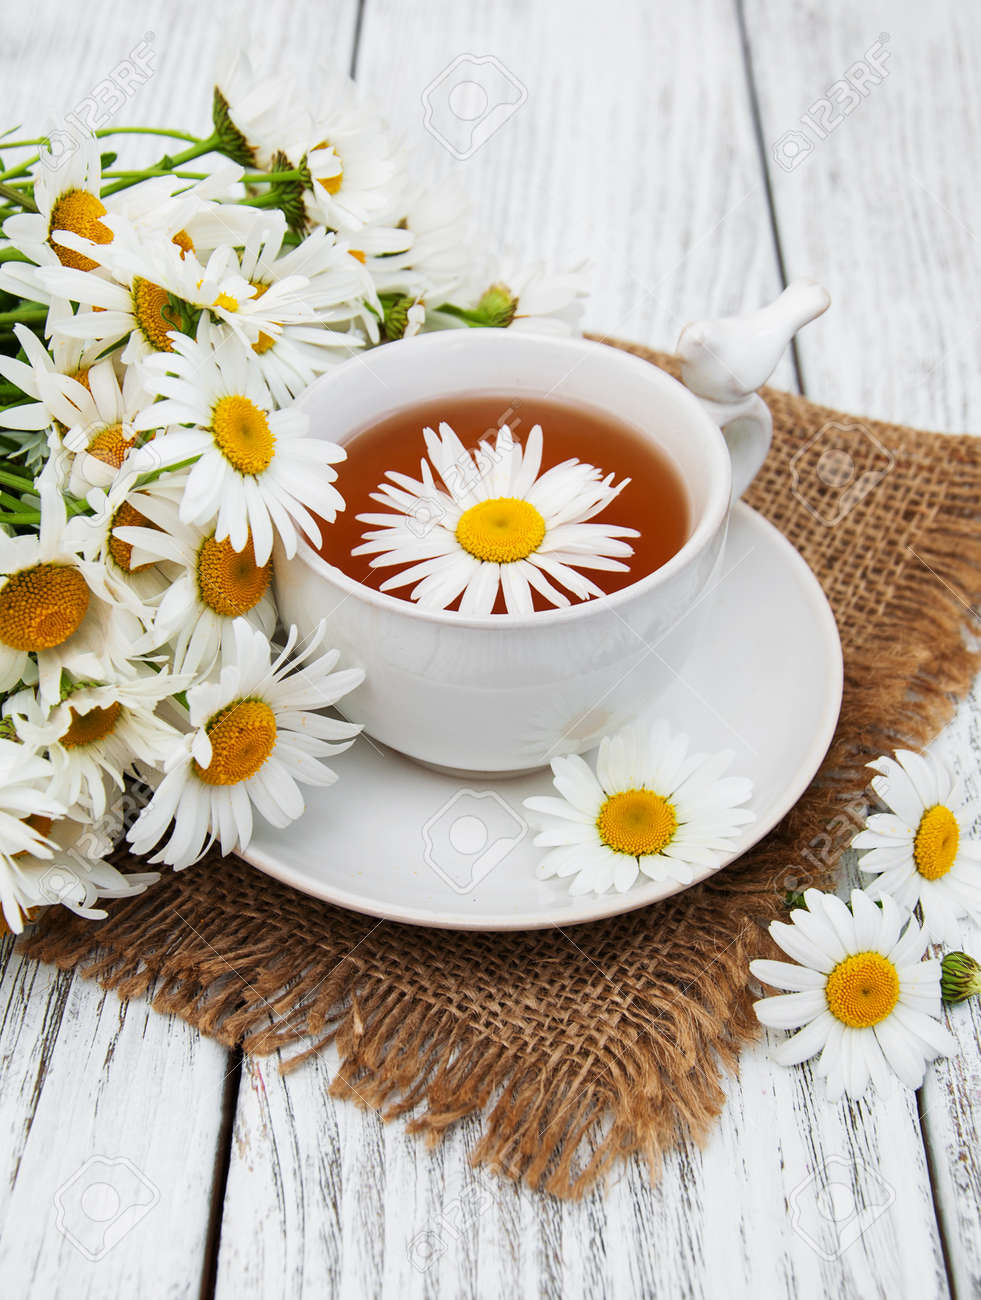 Cup Of Herbal Tea With Chamomile Flowers On A Wooden Table Stock